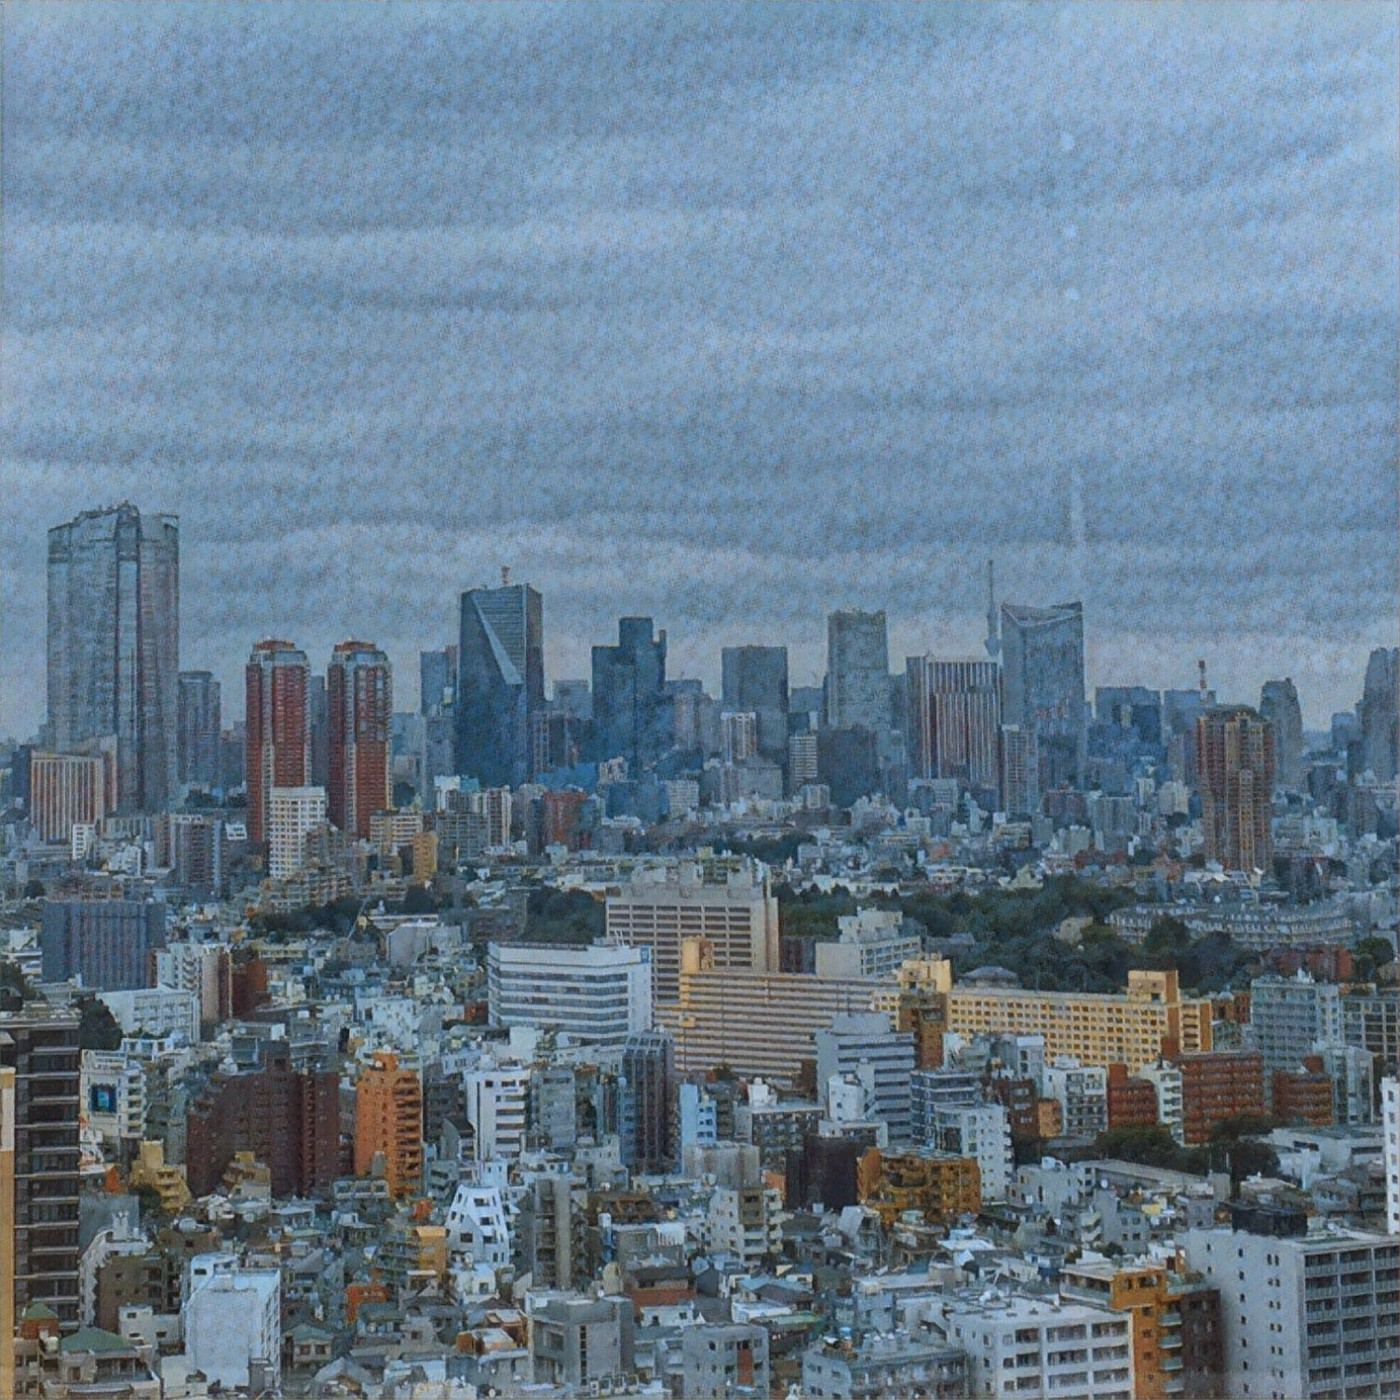 A watercolor style photograph of a city skyline.